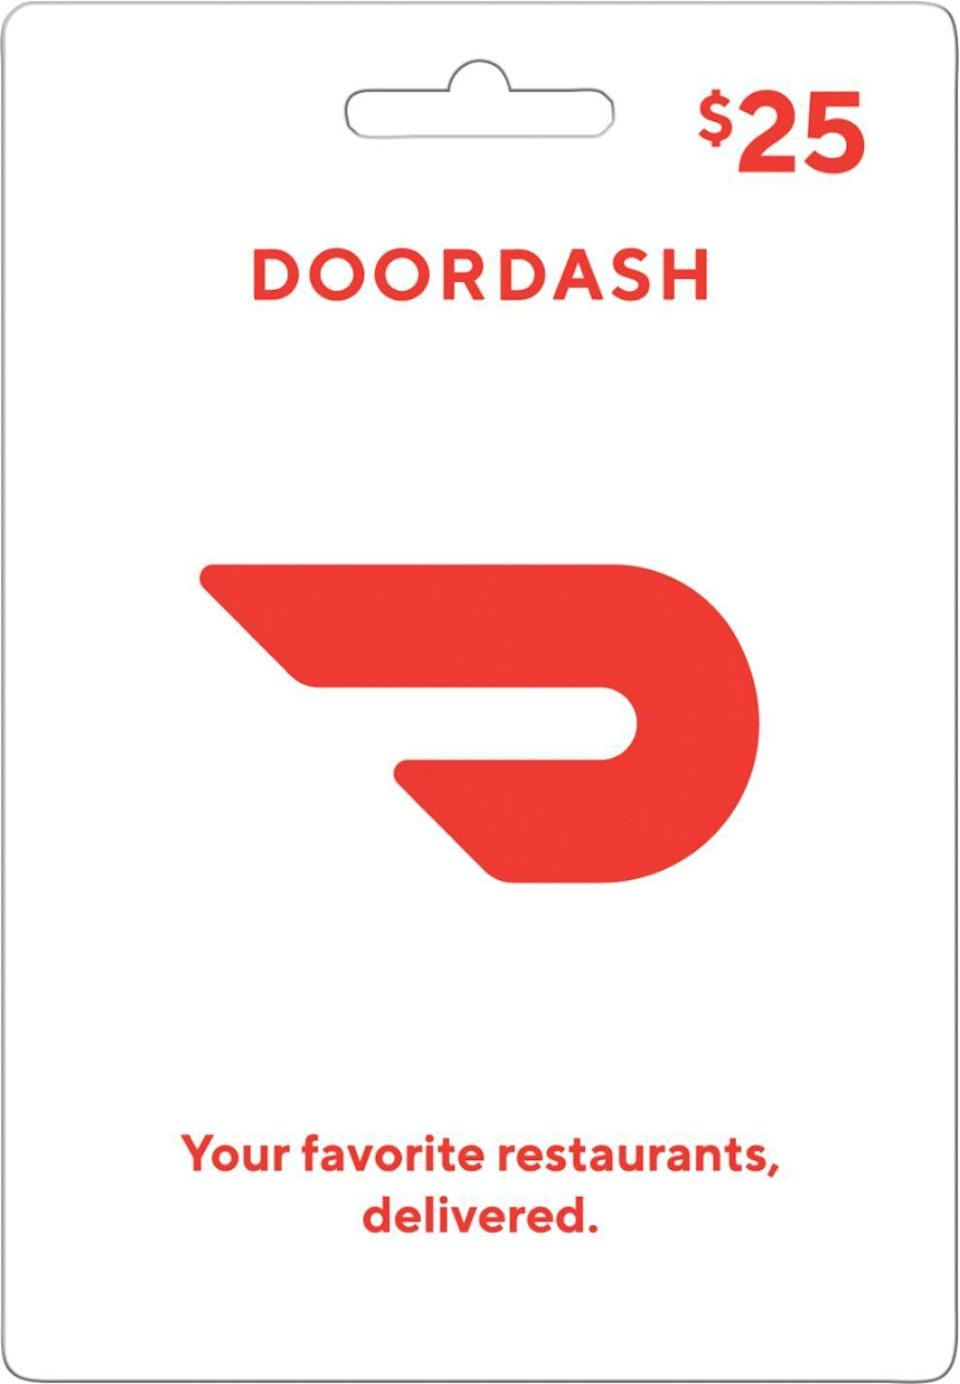 """<p><strong>DoorDash</strong></p><p>bestbuy.com</p><p><strong>$25.00</strong></p><p><a href=""""https://go.redirectingat.com?id=74968X1596630&url=https%3A%2F%2Fwww.bestbuy.com%2Fsite%2Fdoordash-25-gift-card%2F6370827.p%3FskuId%3D6370827&sref=https%3A%2F%2Fwww.delish.com%2Fkitchen-tools%2Fg4499%2Fbest-friend-gifts%2F"""" rel=""""nofollow noopener"""" target=""""_blank"""" data-ylk=""""slk:BUY NOW"""" class=""""link rapid-noclick-resp"""">BUY NOW</a></p><p>Give the gift of food delivery this holiday season with a Door Dash gift card! The gift cards can be ordered online and in-store and can be sent to the recipient in an instant.</p>"""